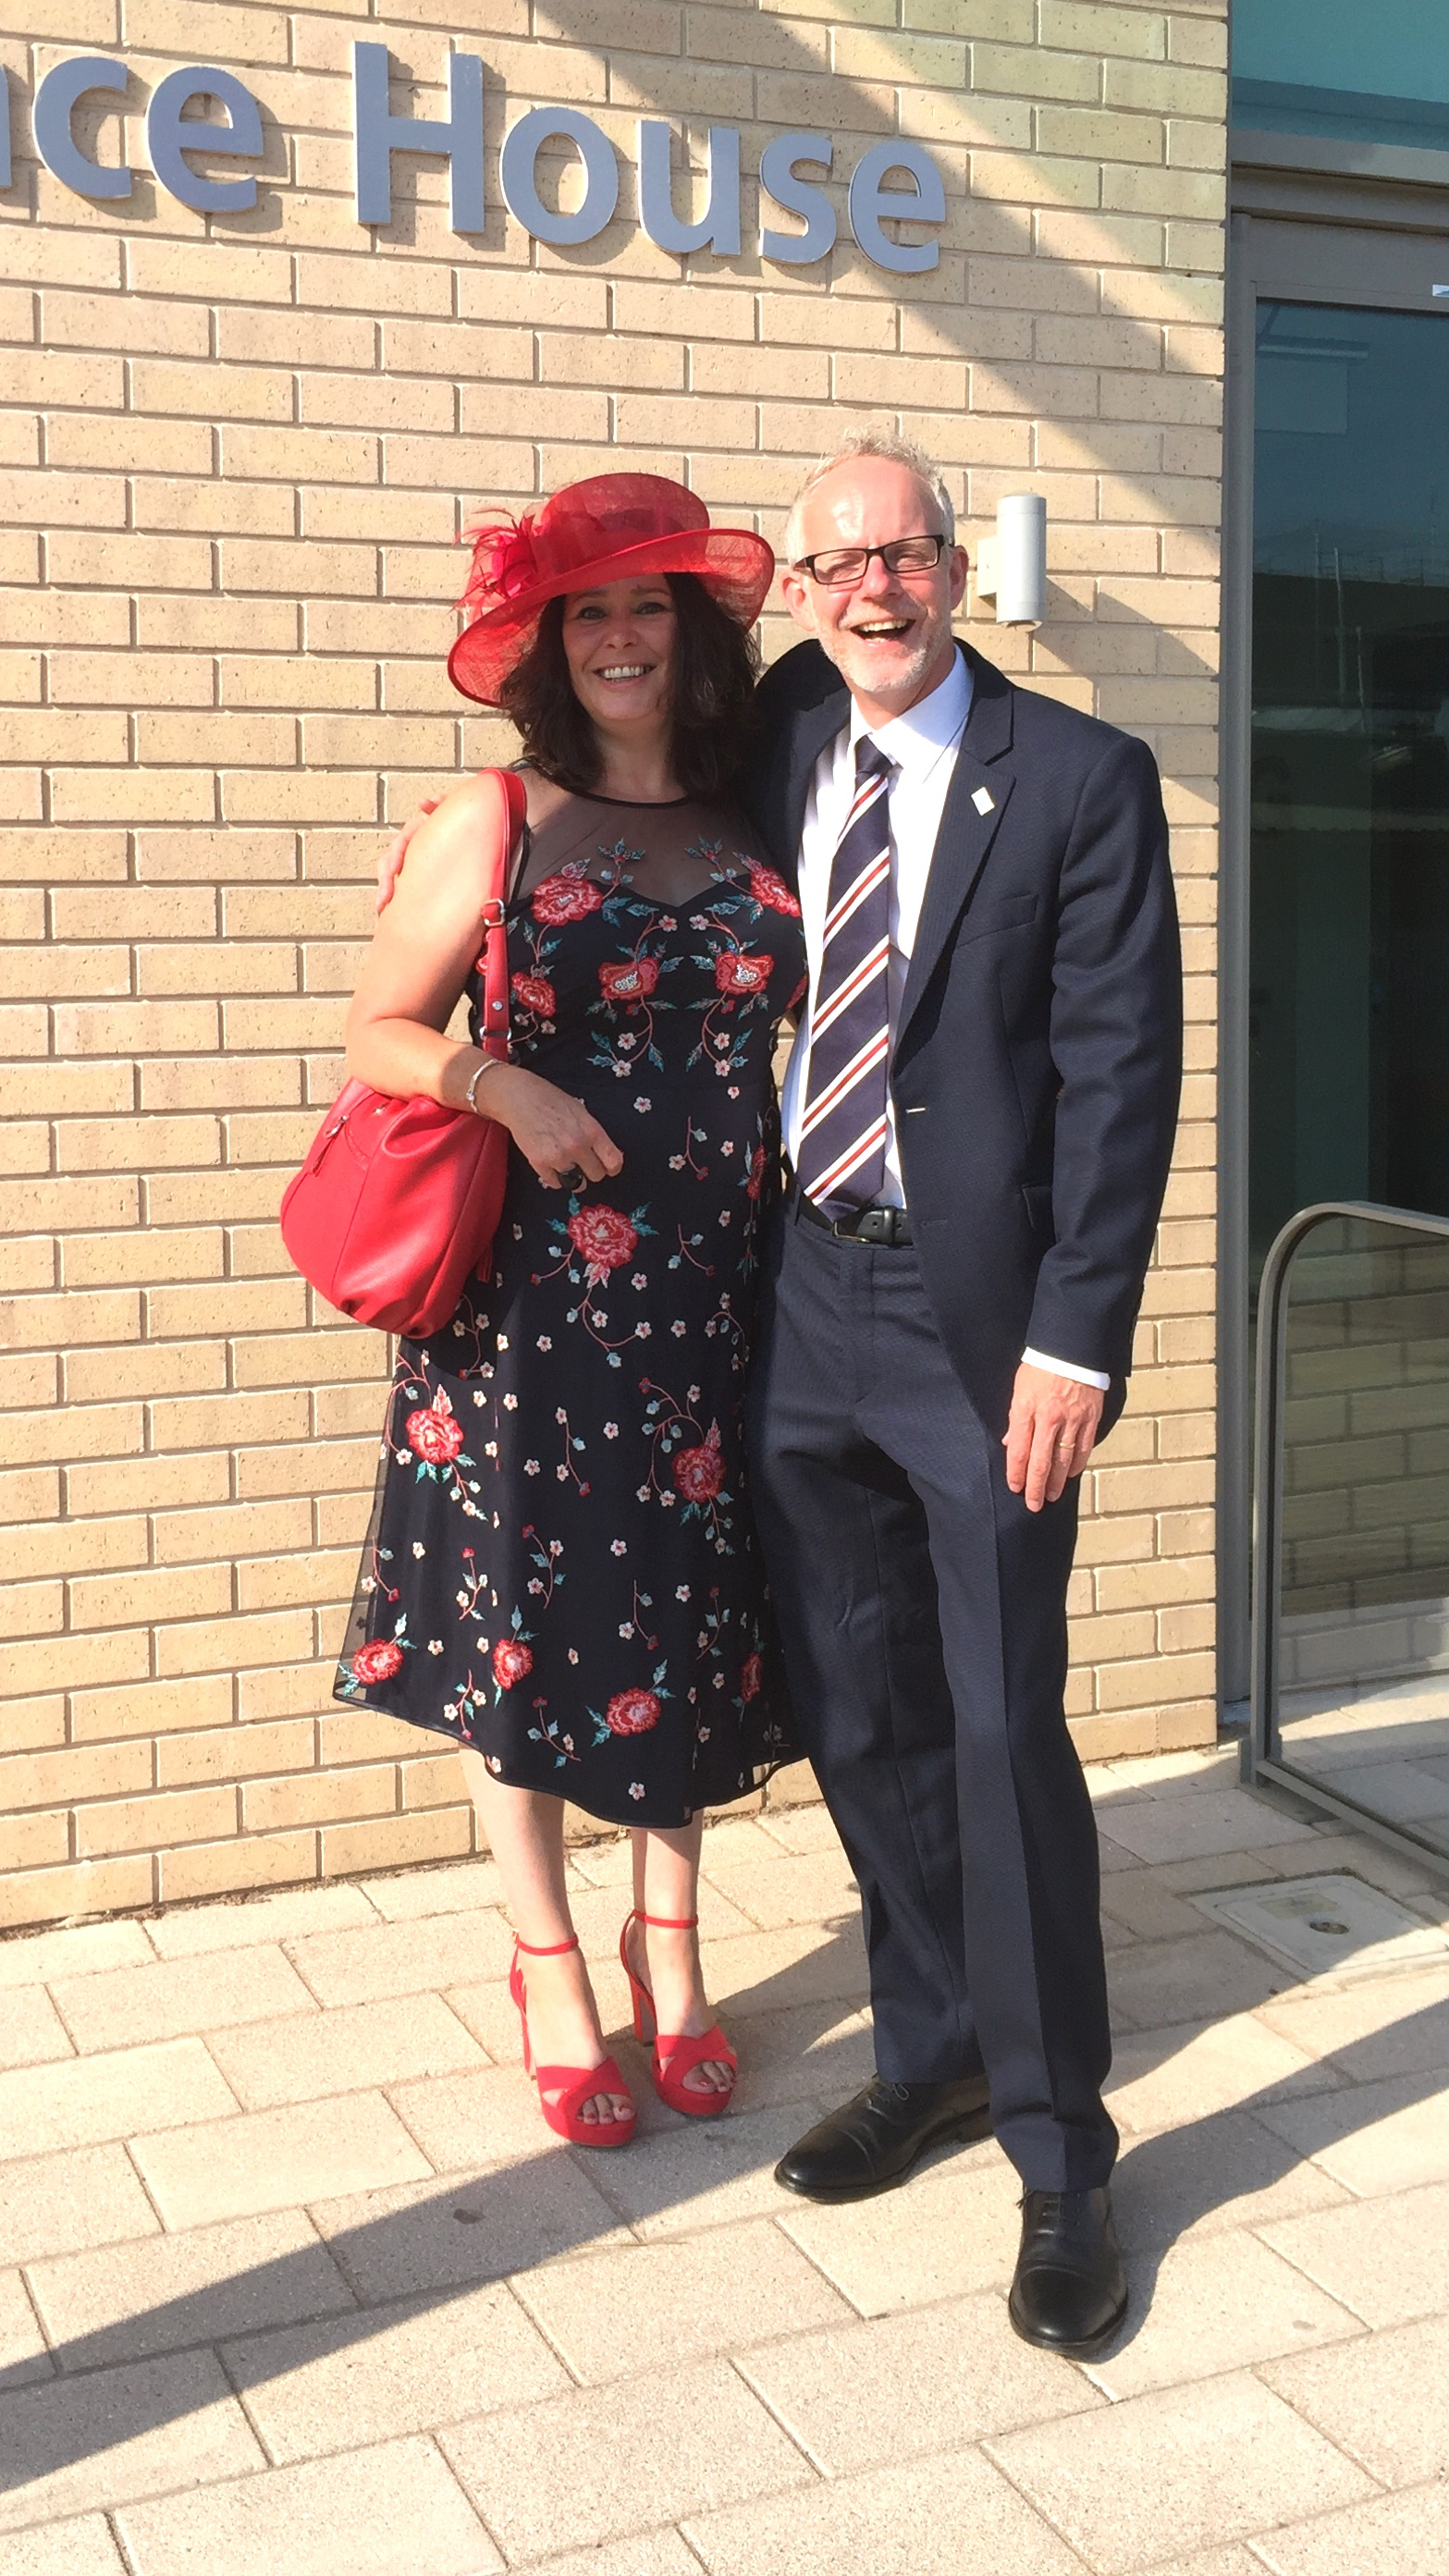 From left to right: Tracey Green, mortuary and bereavement services manager at WSFT, and Stephen Dunn, chief executive of WSFT, ready to attend the NHS70 service at Westminster Abbey.